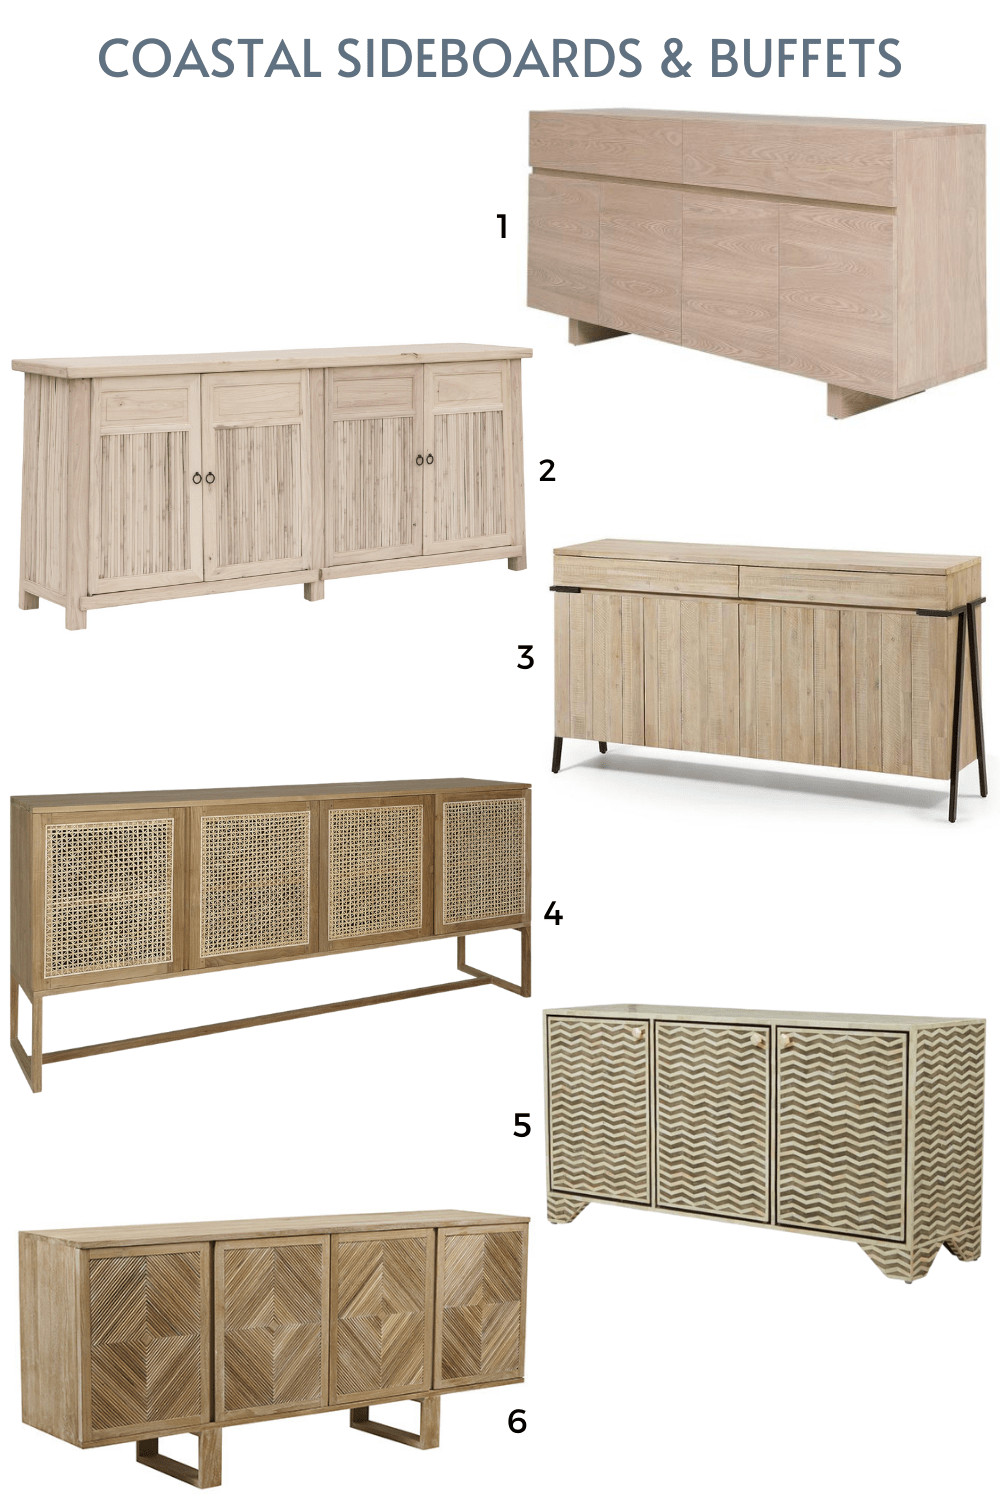 coastal timber sideboards buffets online